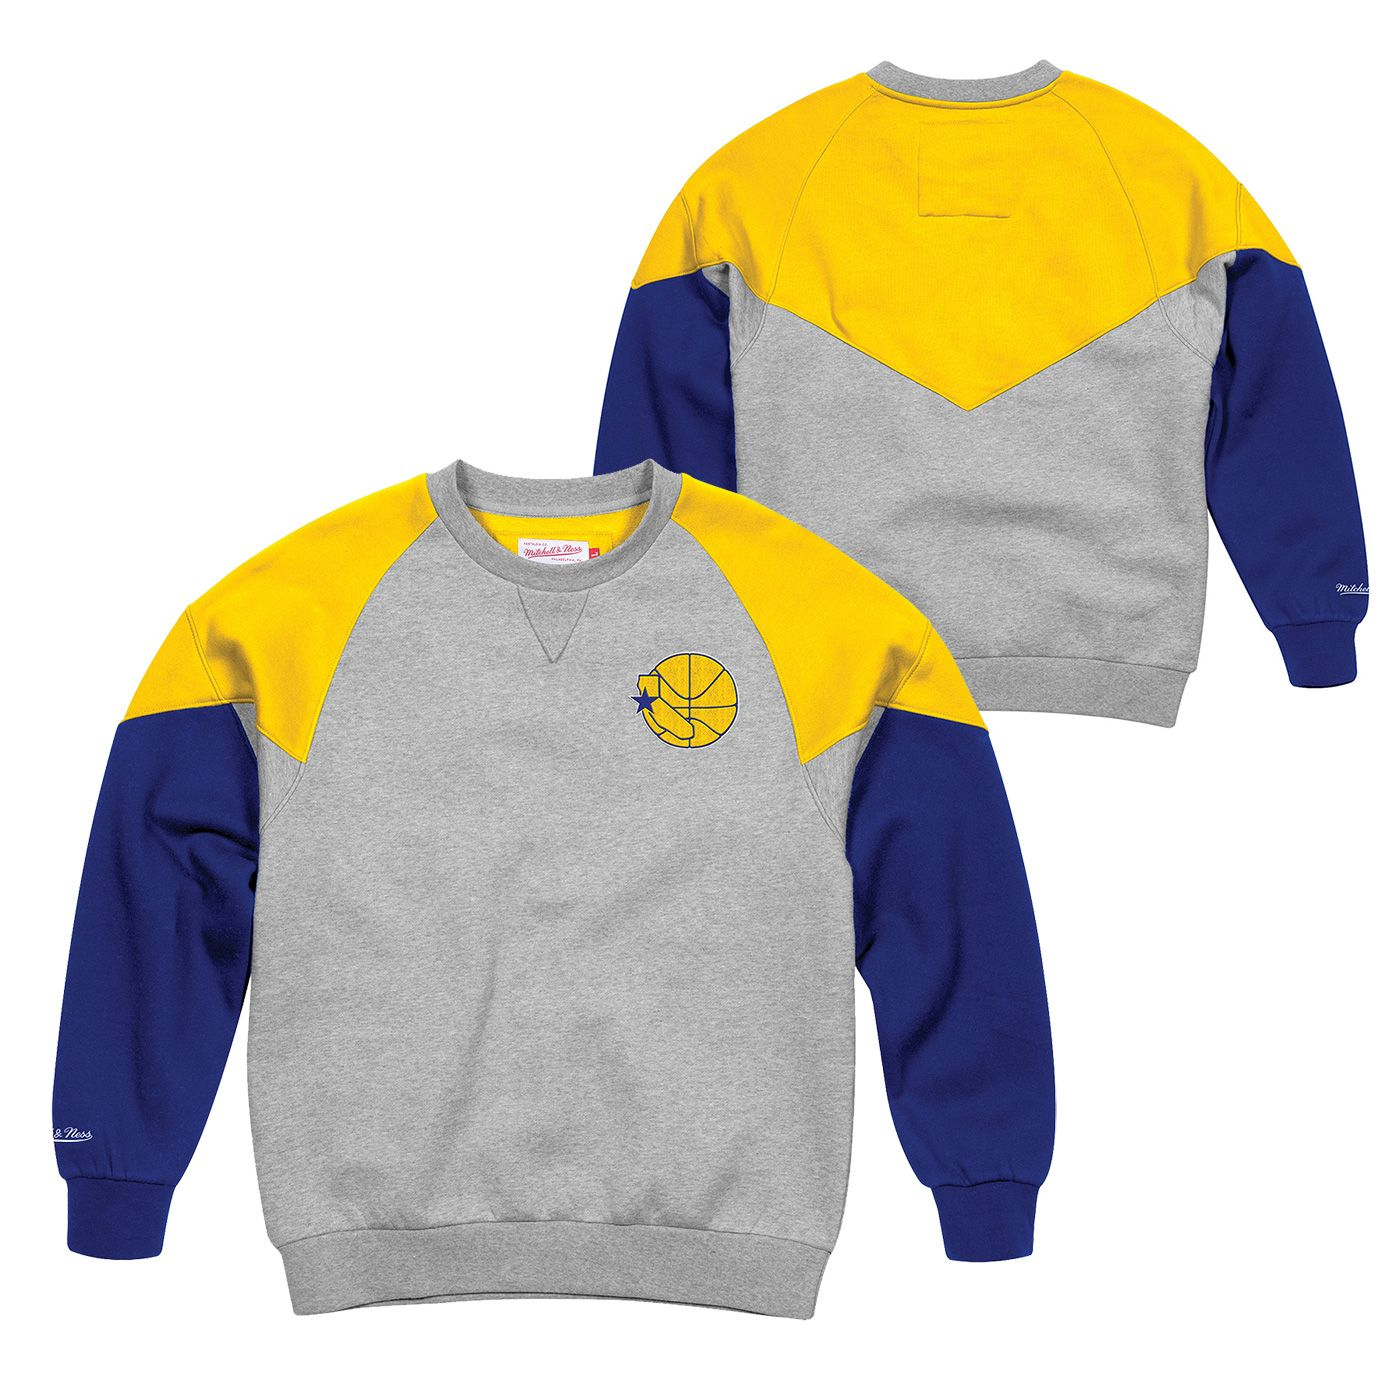 56002ce2 Golden State Warriors Mitchell & Ness Men's Hardwood Classic Trading Block  Crew - Grey/Gold/Royal - Golden State Warriors - Official Online Store